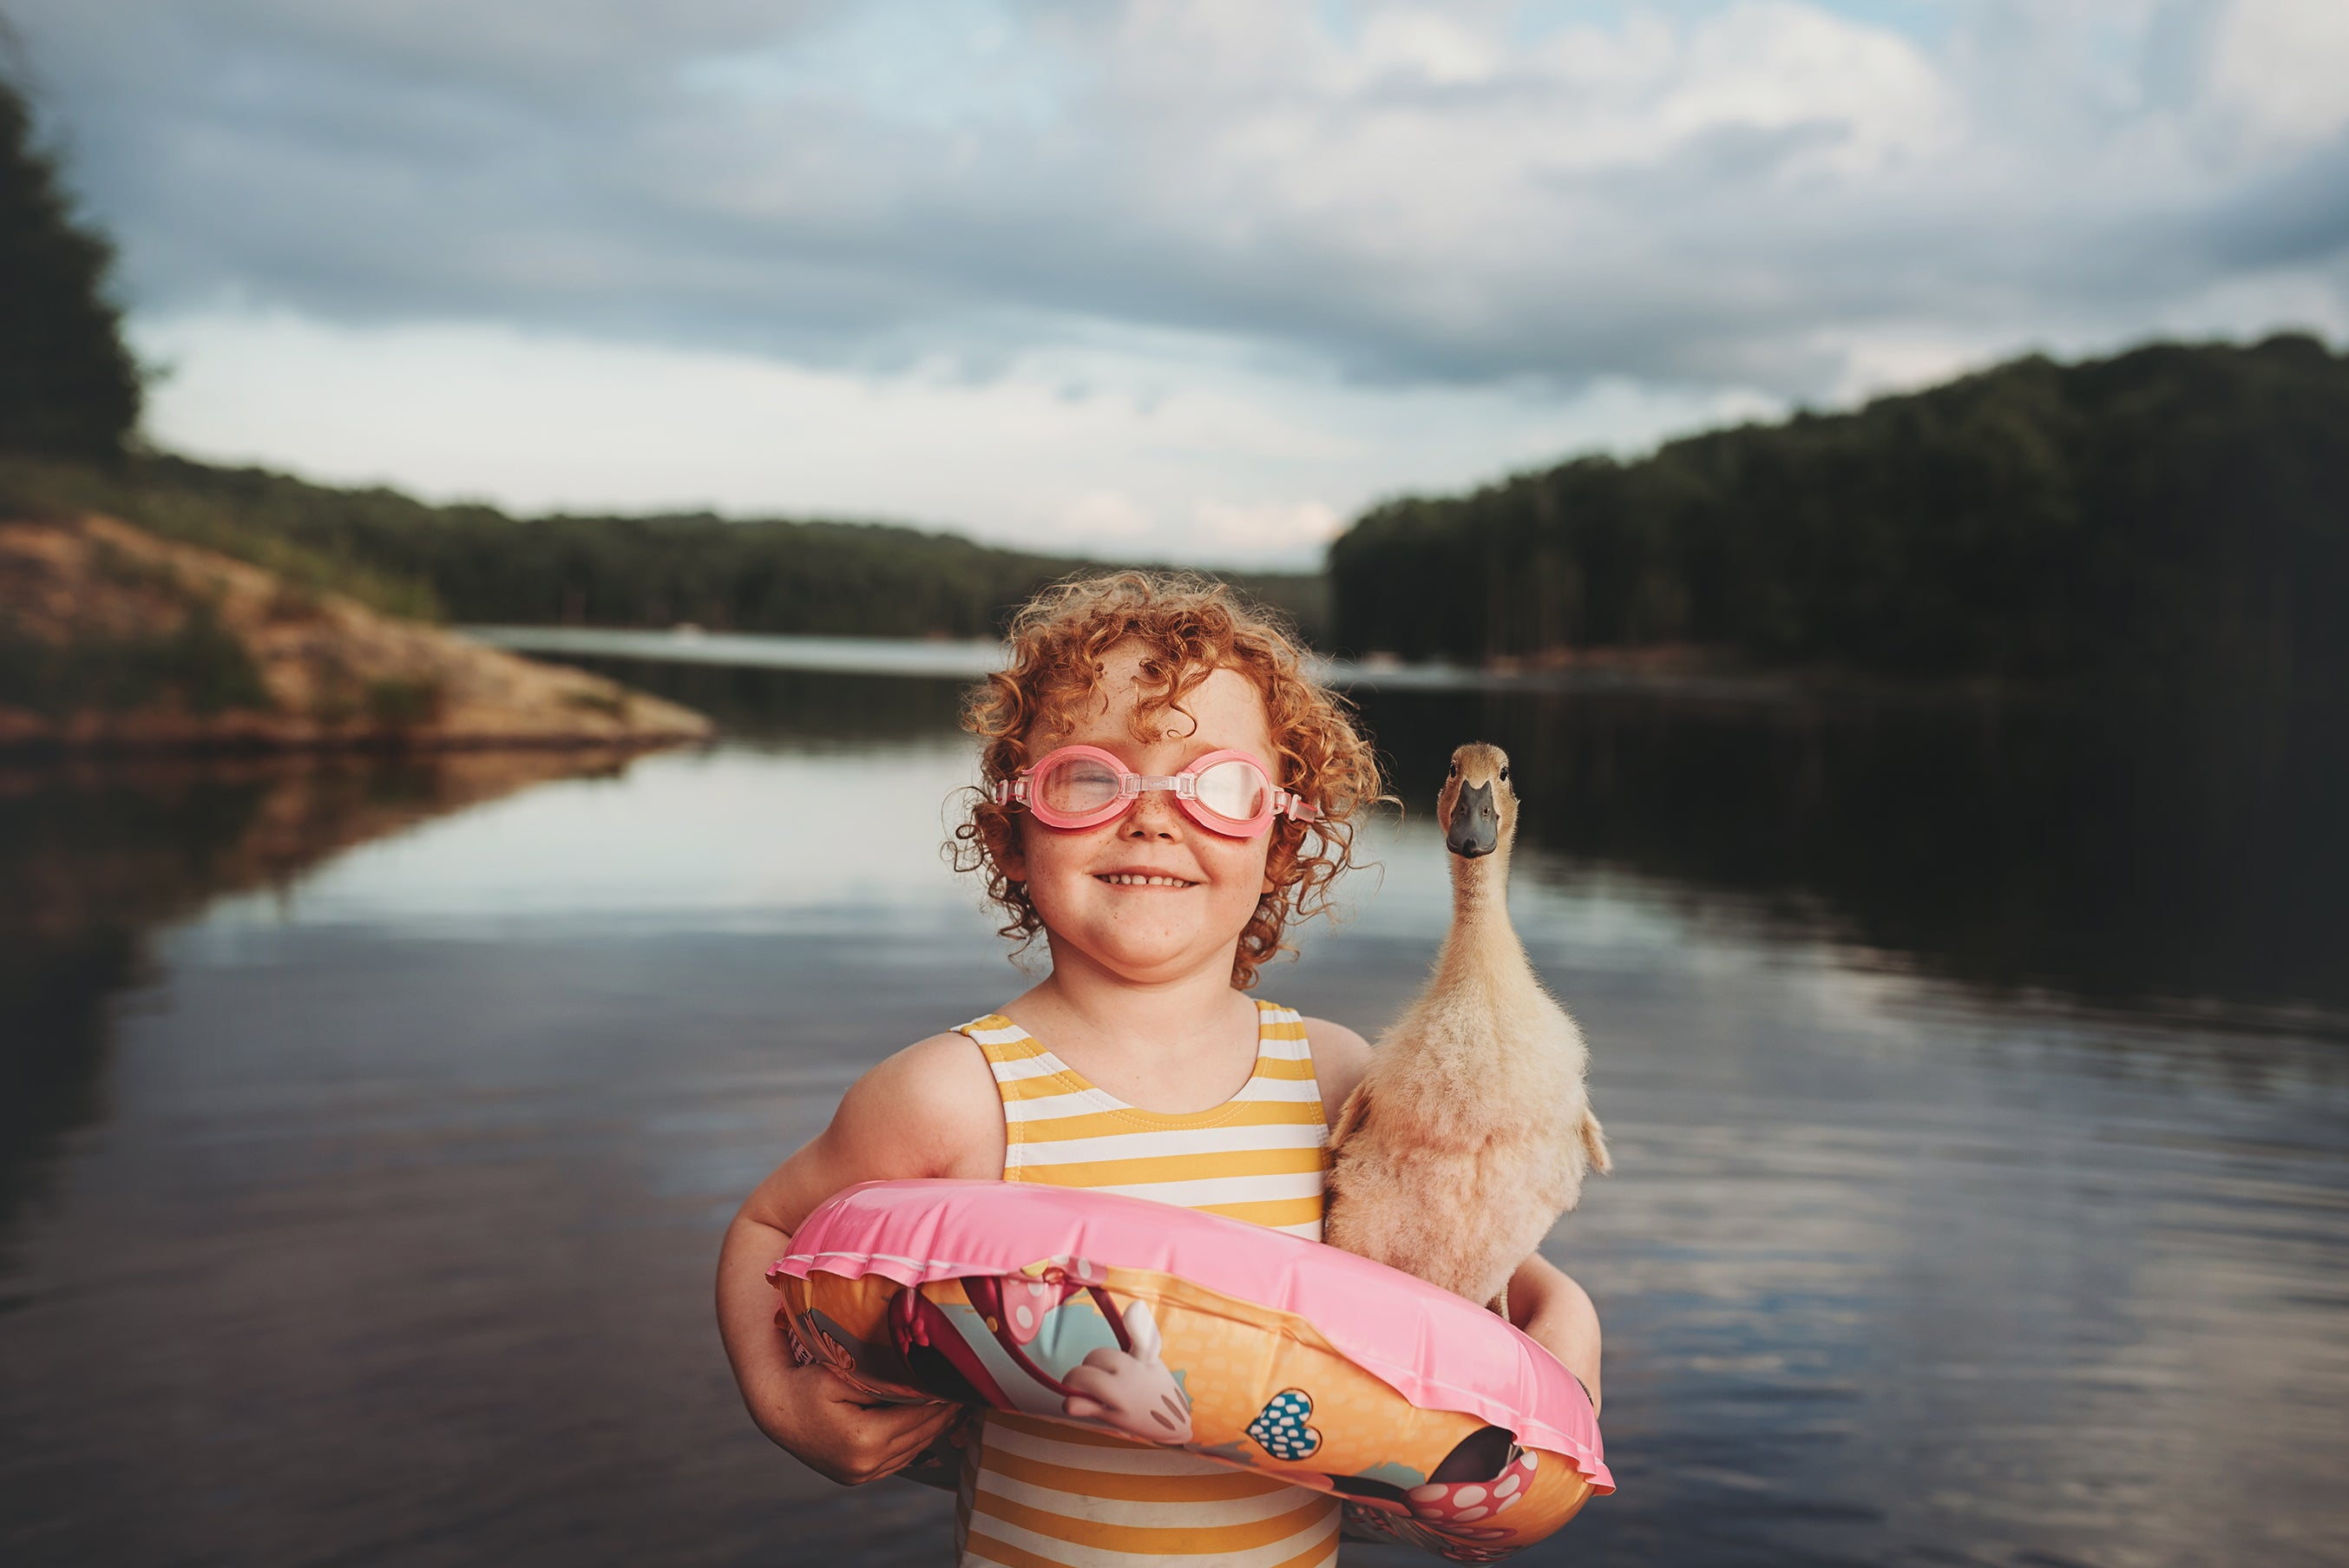 Capturing Unique Images with Children & Animals